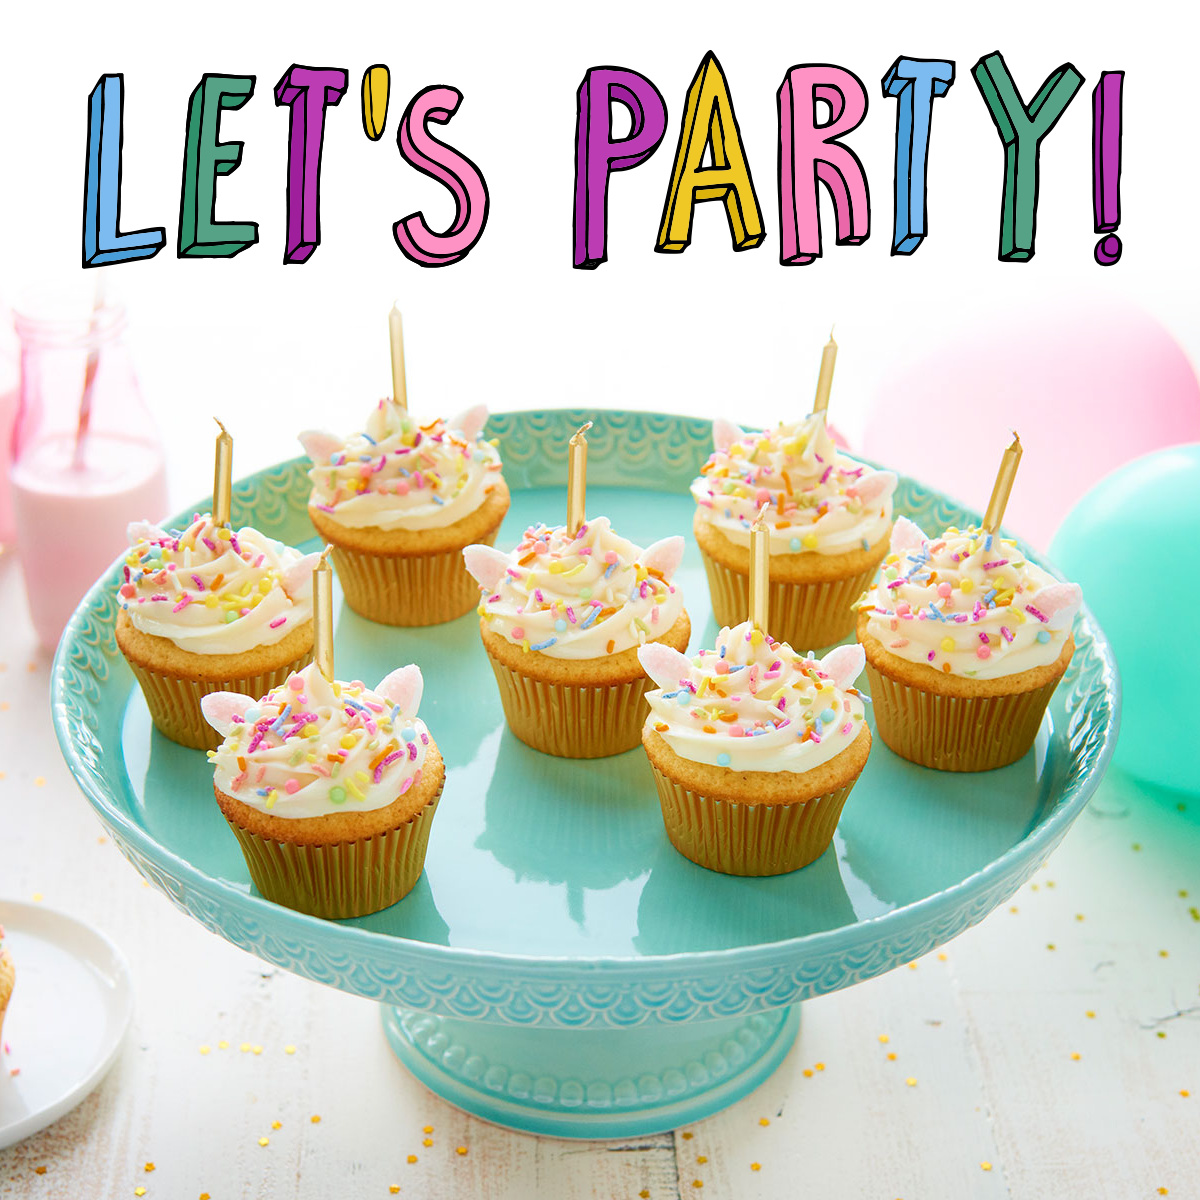 Healthy Party Ideas for Kids